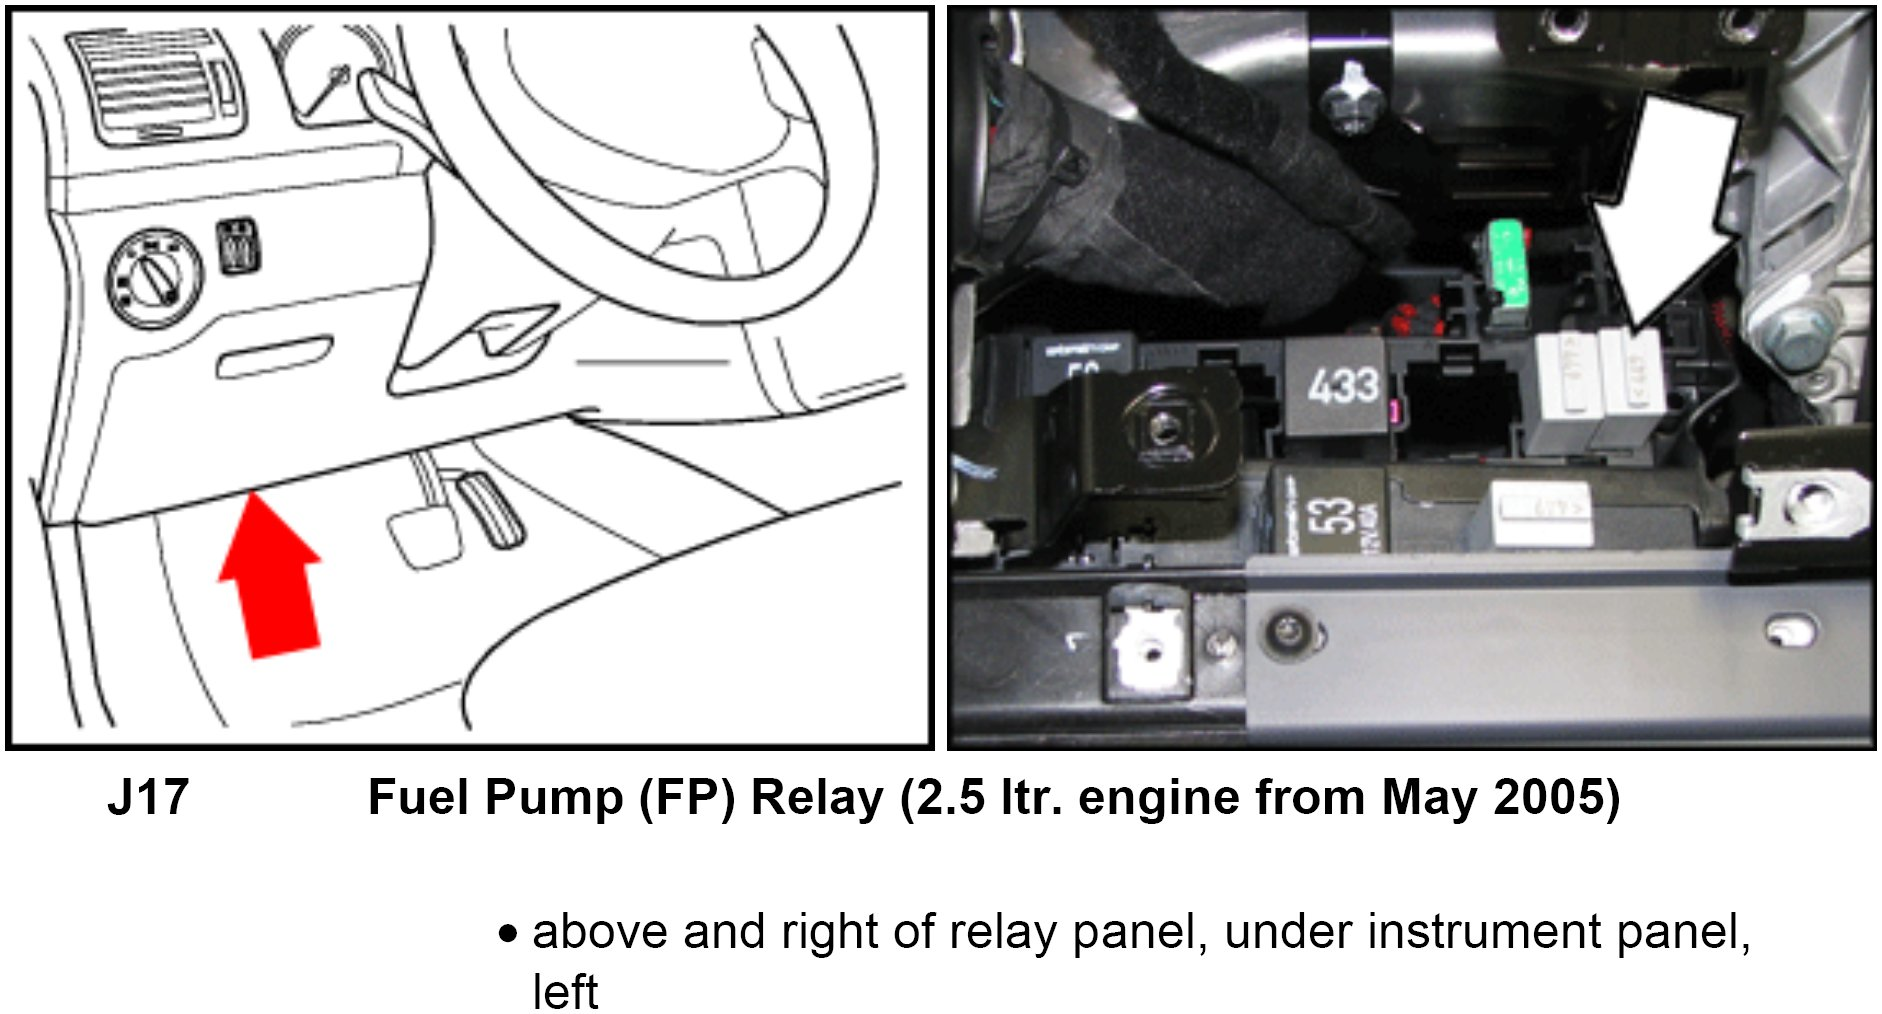 jetta fuel pump relay location image details vw polo 1.4 fuel pump relay at Jetta Fuel Pump Relay Diagram